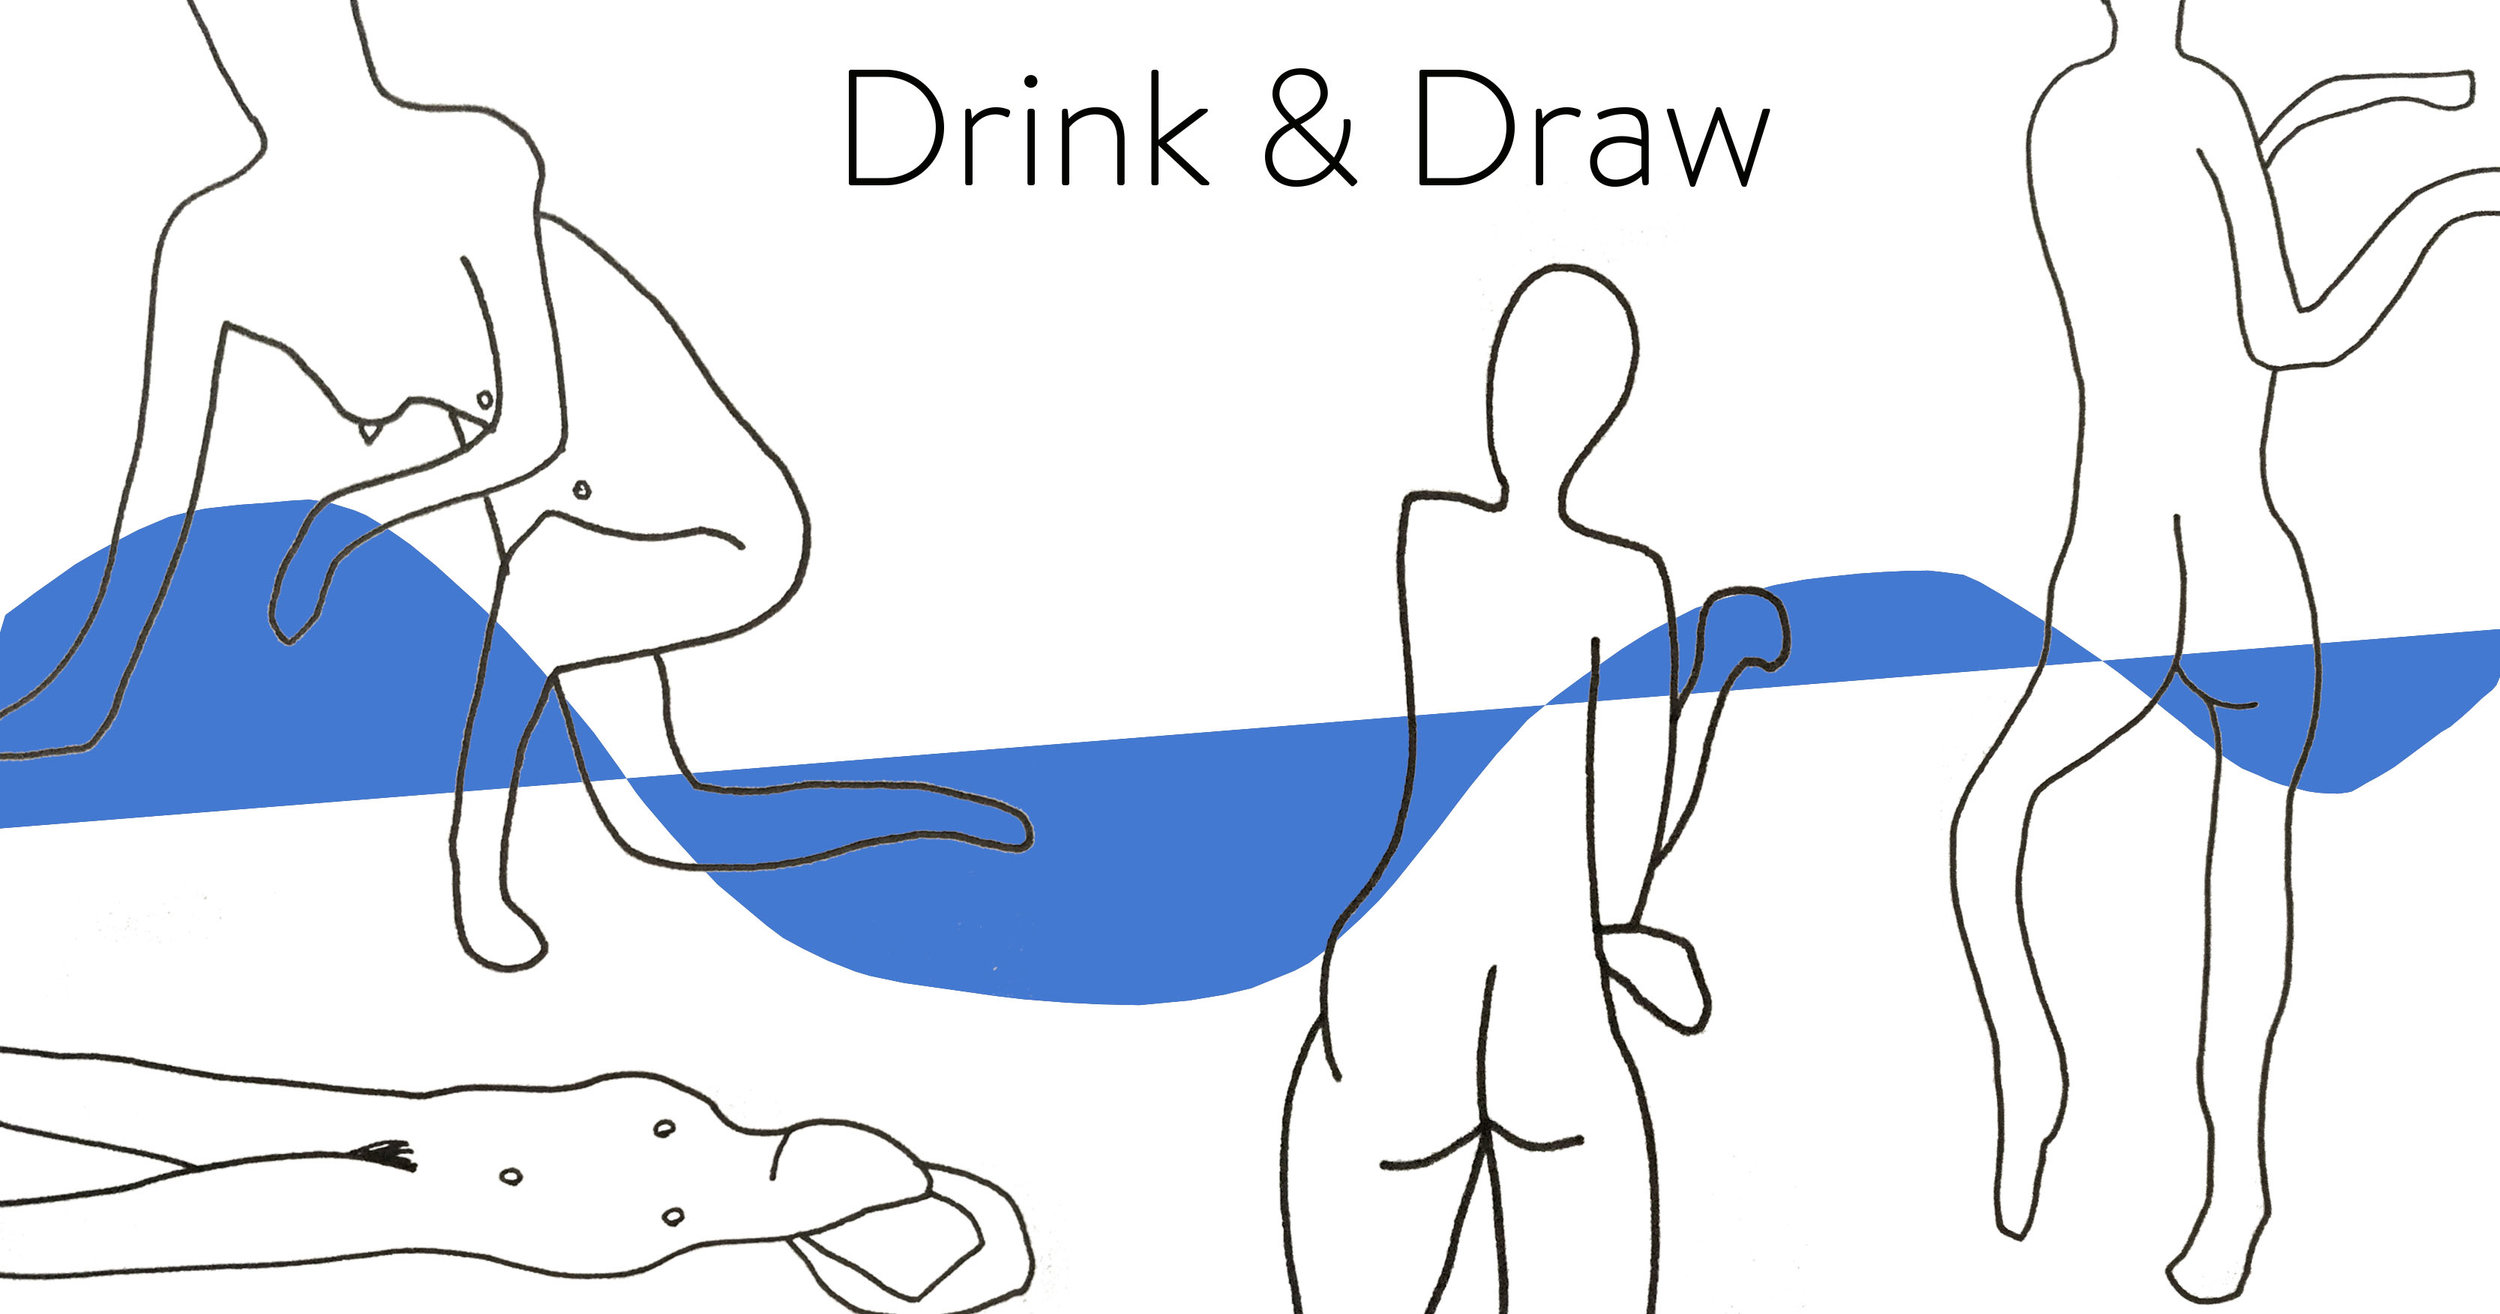 Drink_And_Draw_#1.jpg